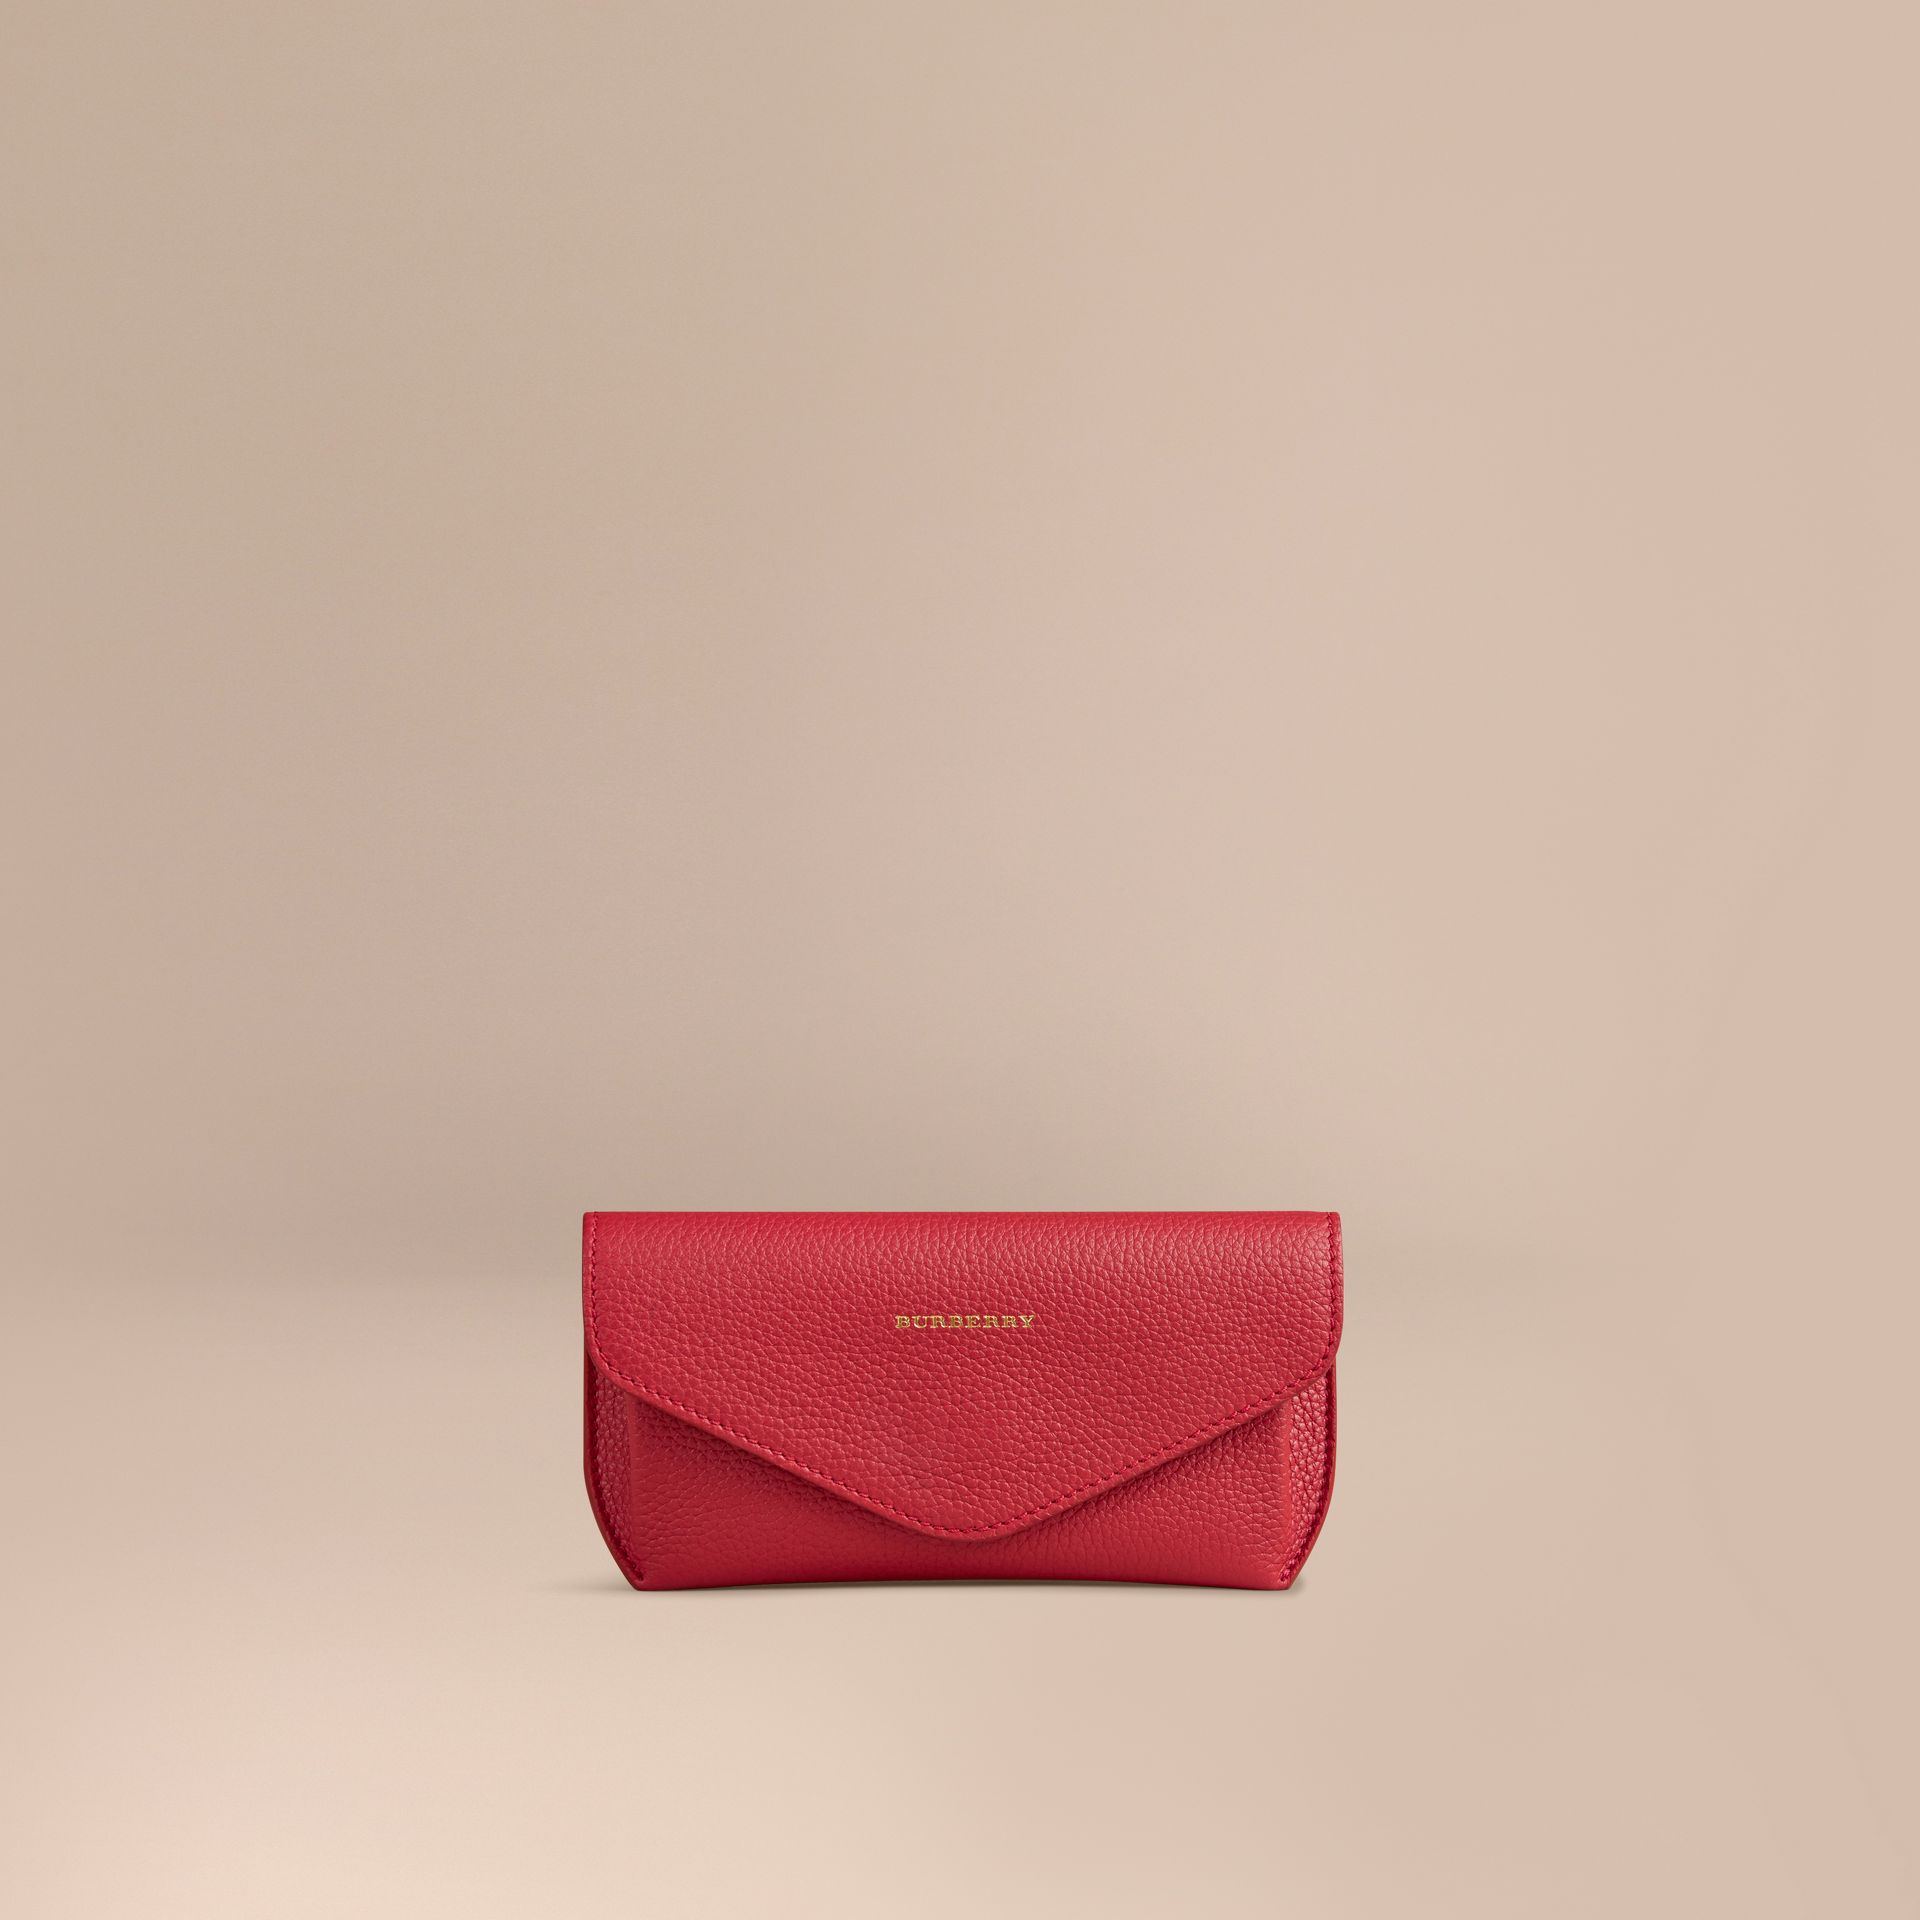 Parade red Grainy Leather Eyewear Case Parade Red - gallery image 1